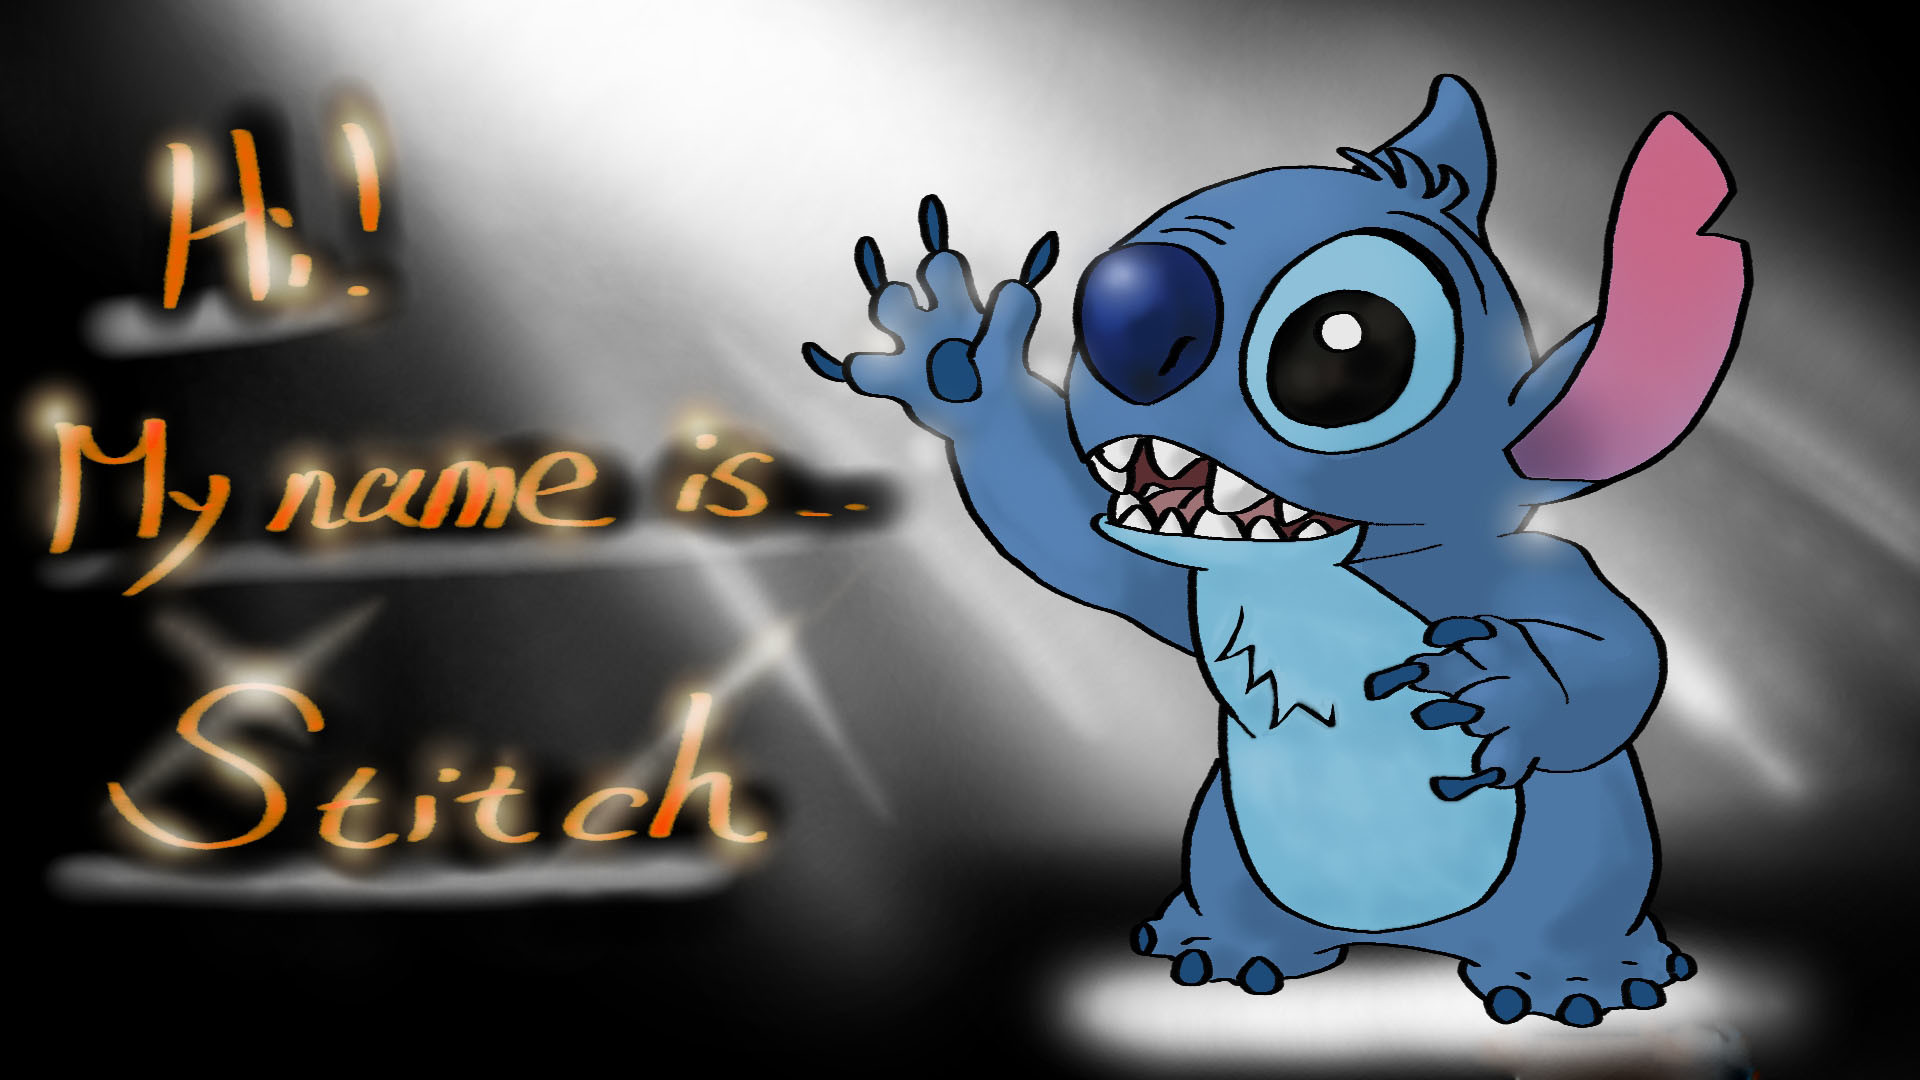 1920x1080 1920-x-1080-px-free-desktop-pictures-lilo- · Download · 1920x1200 Movie - Lilo & Stitch Wallpaper